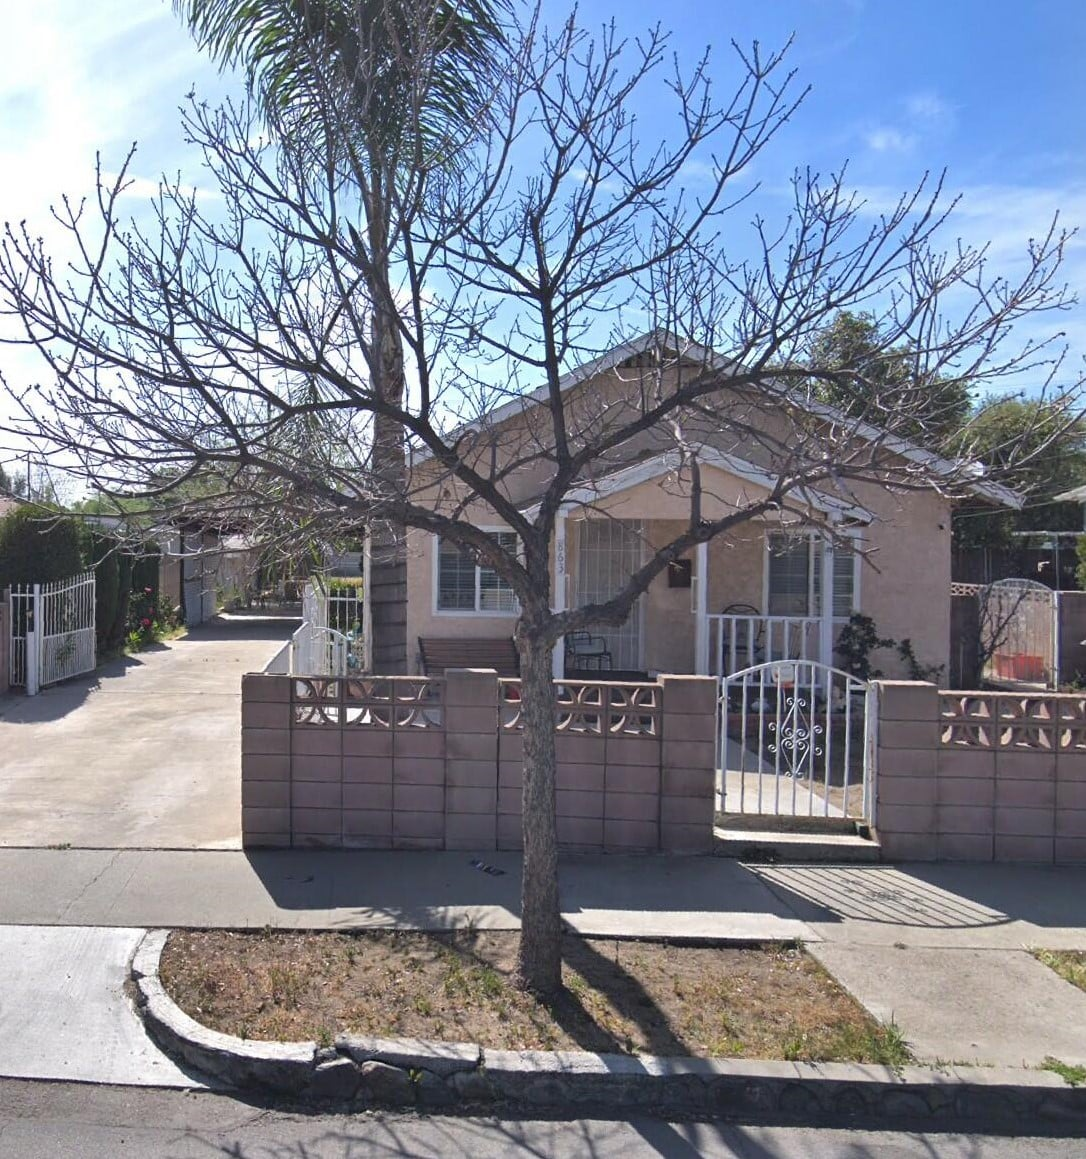 863 5th Ave. Upland, CA